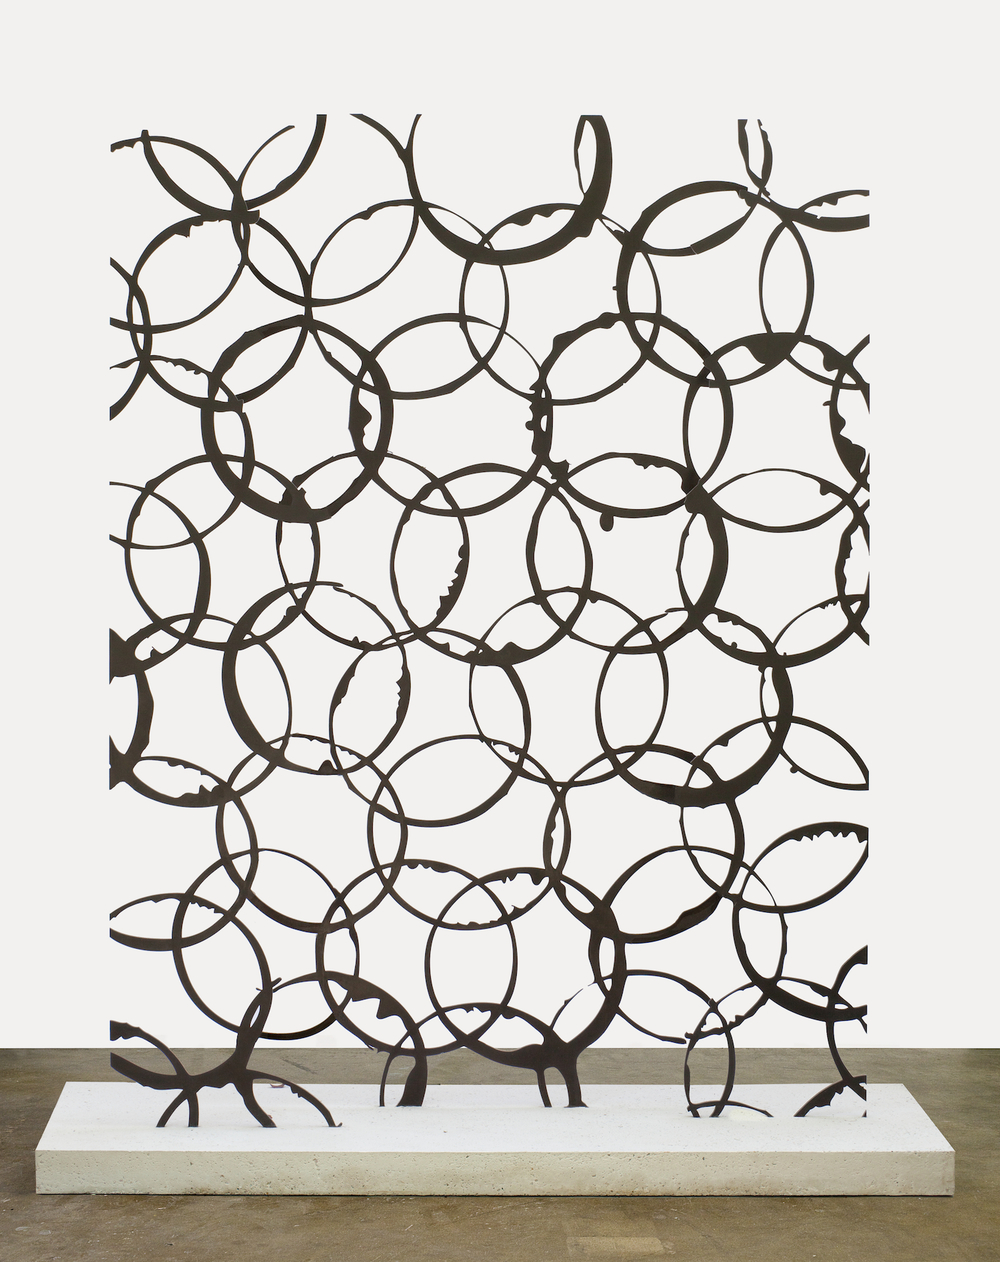 Anthony Pearson  Untitled (Transmission)  2012 Stainless steel, sandblasted white Portland cement 81h x 70w x 30d in AP314